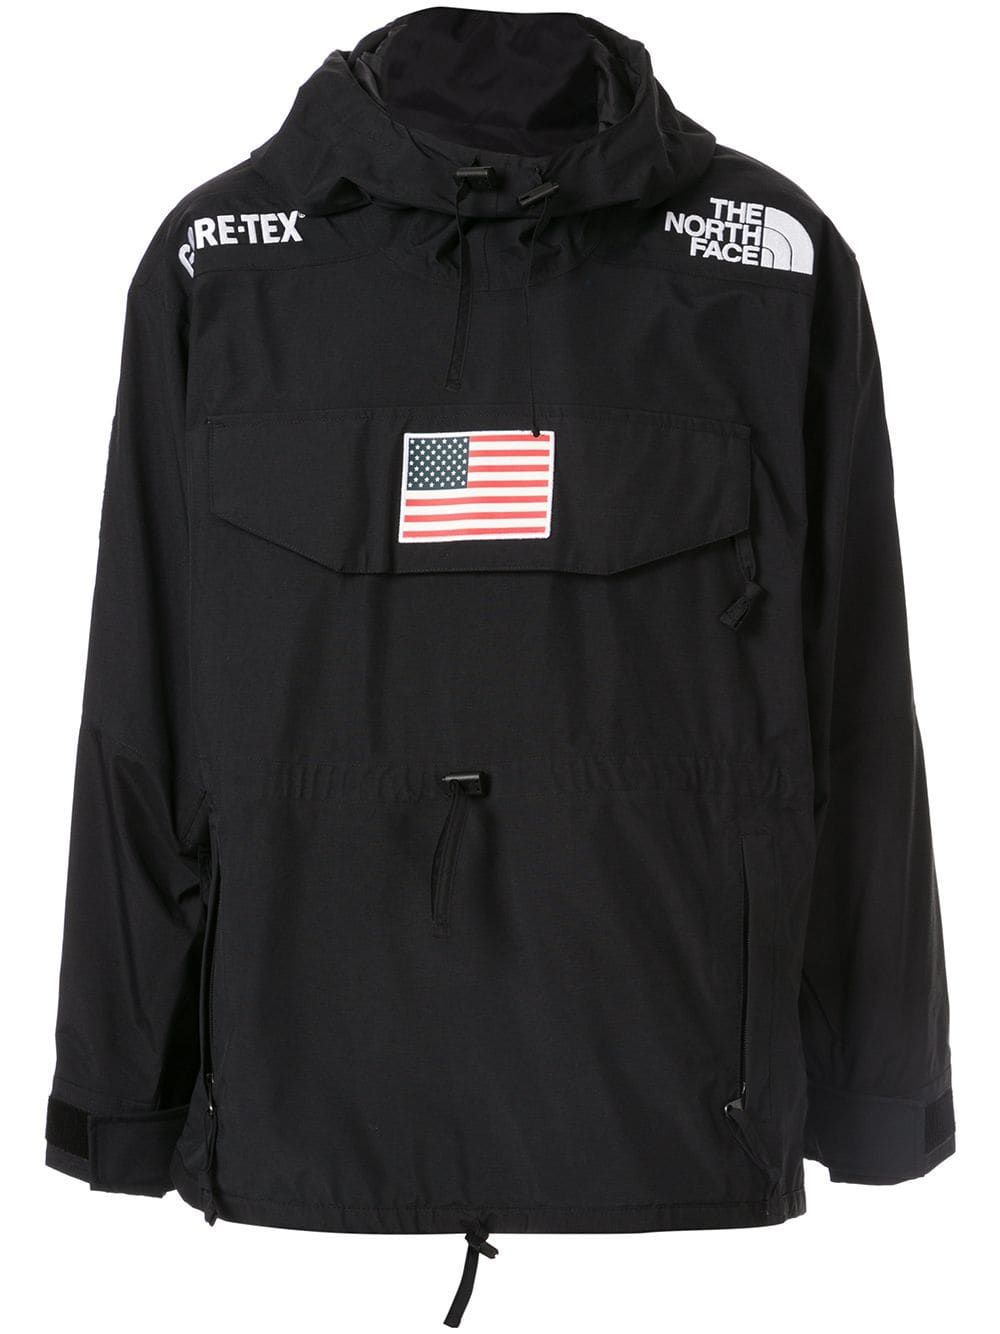 Supreme X The North Face Expedition Anorak Farfetch Anorak Supreme Clothing North Face Jacket